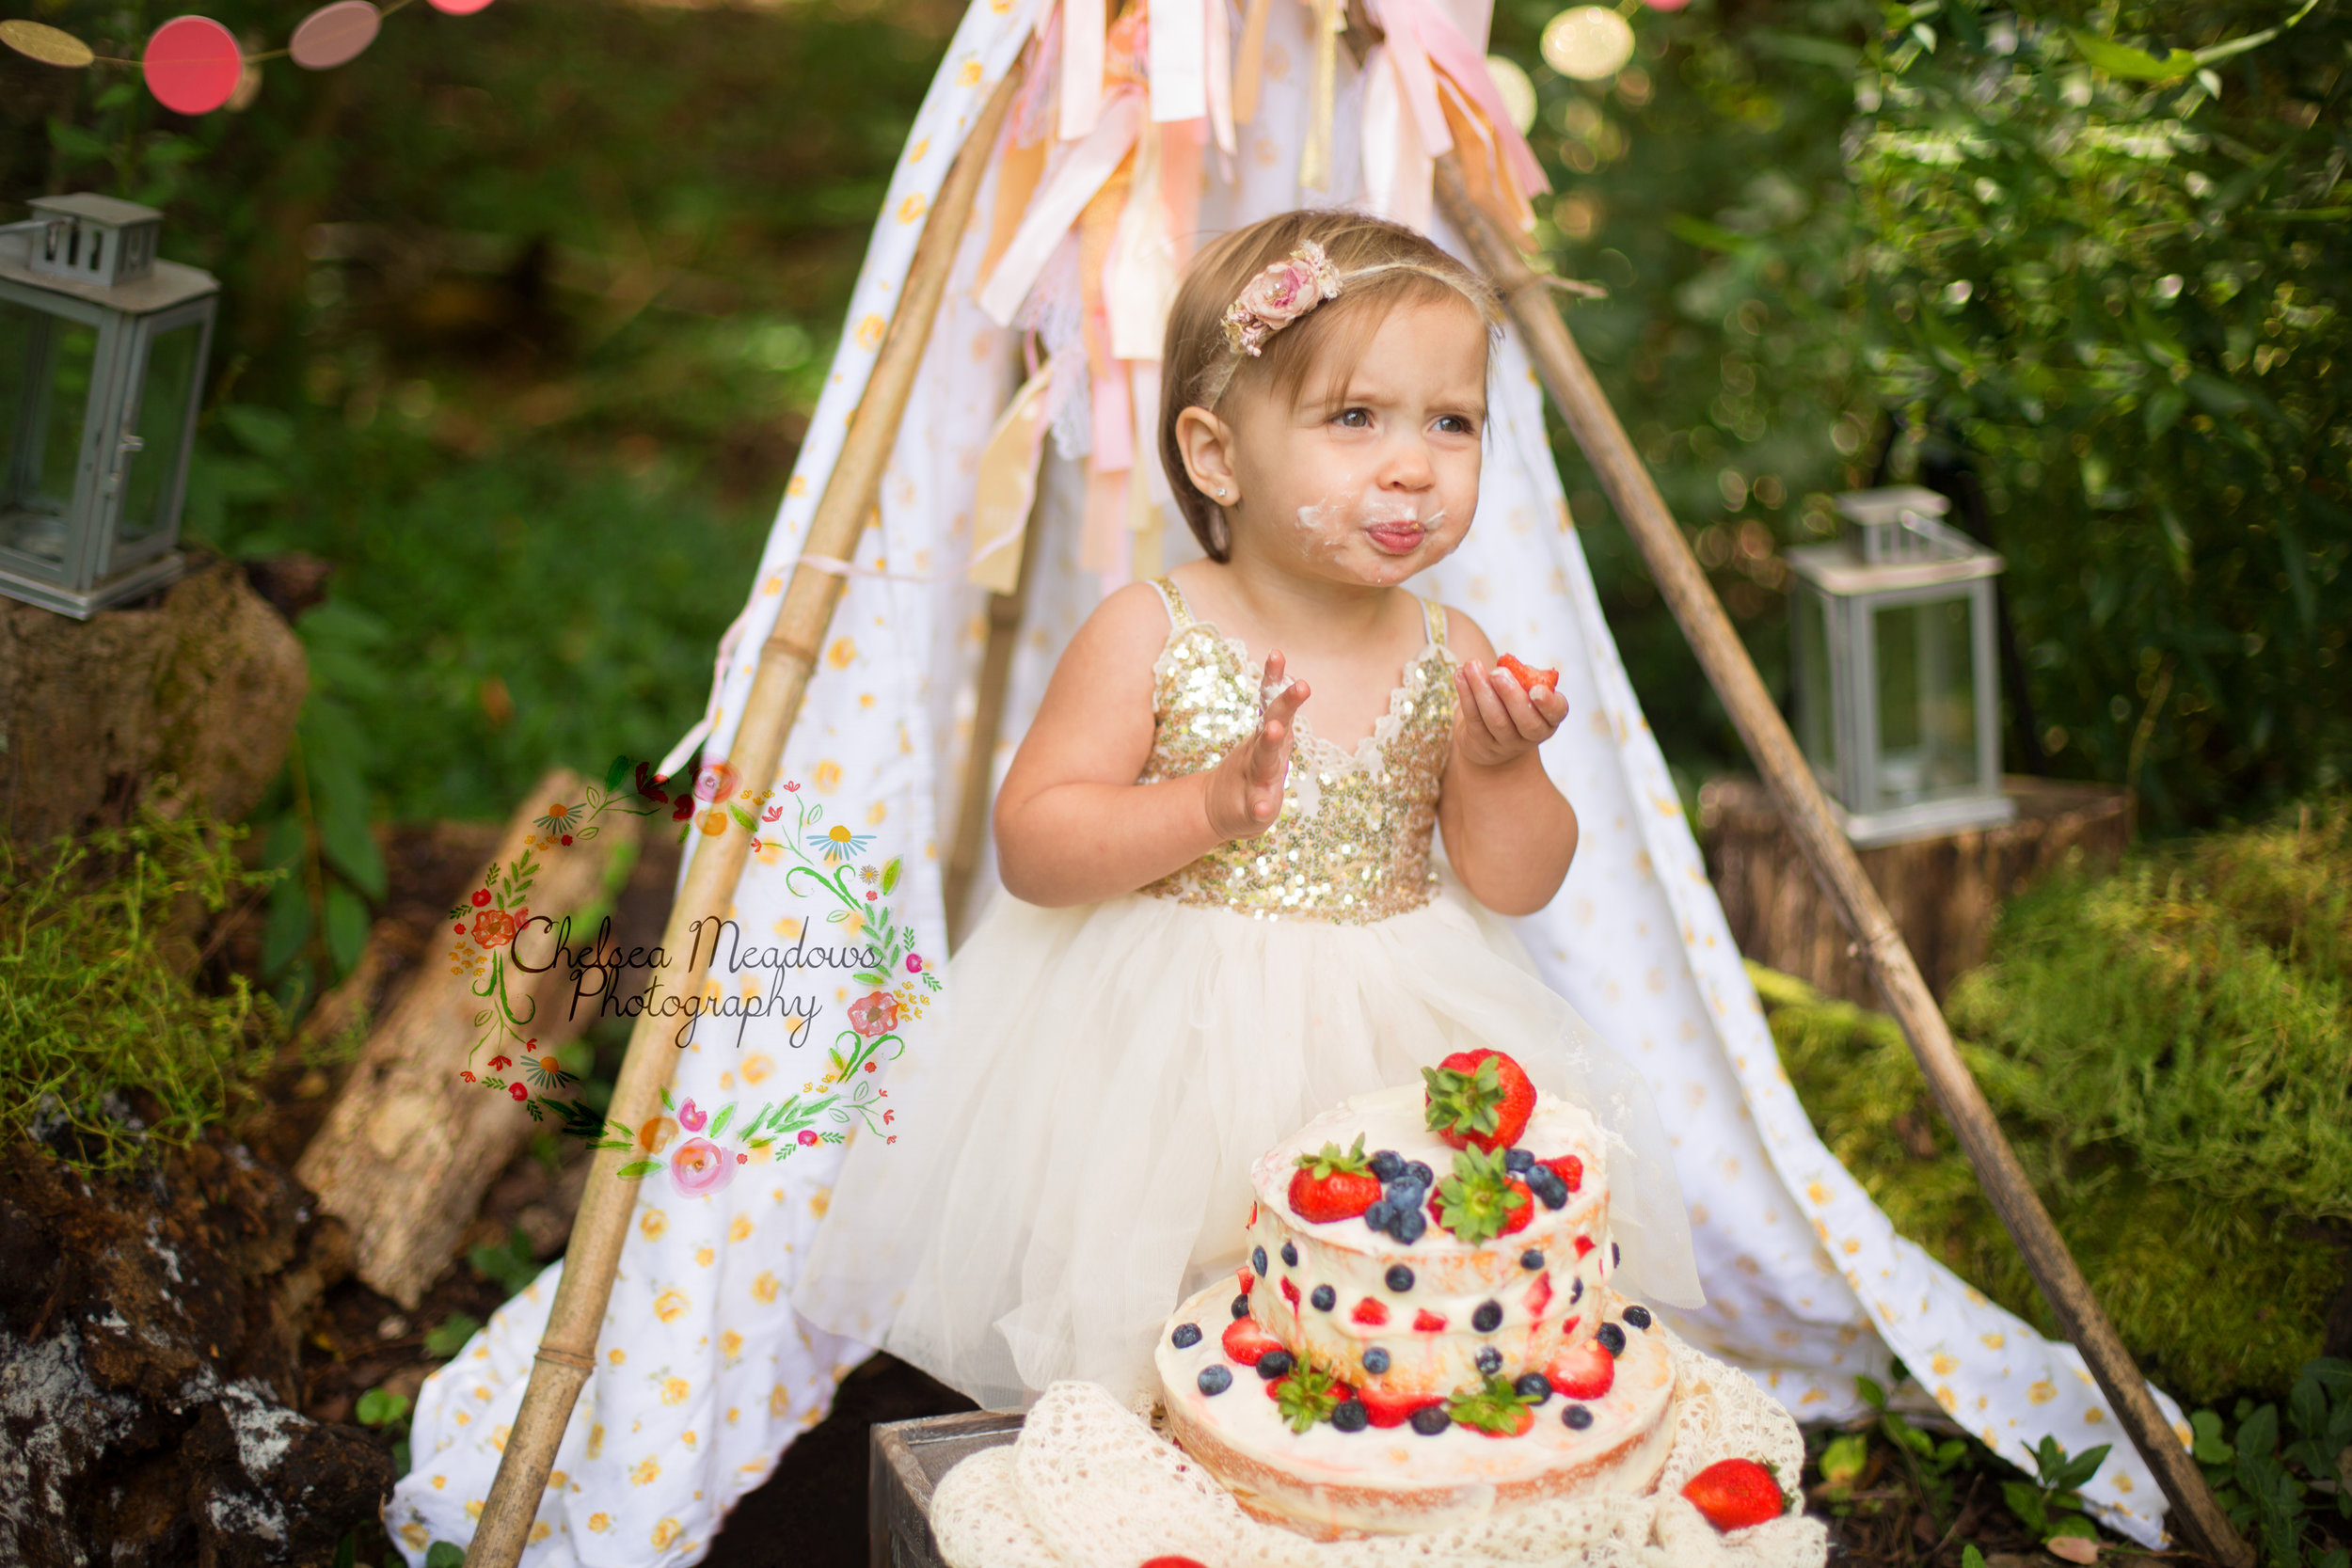 Paisley First Birthay Cake Smash - Nashville Family Photographer - Chelsea Meadows Photography (26).jpg